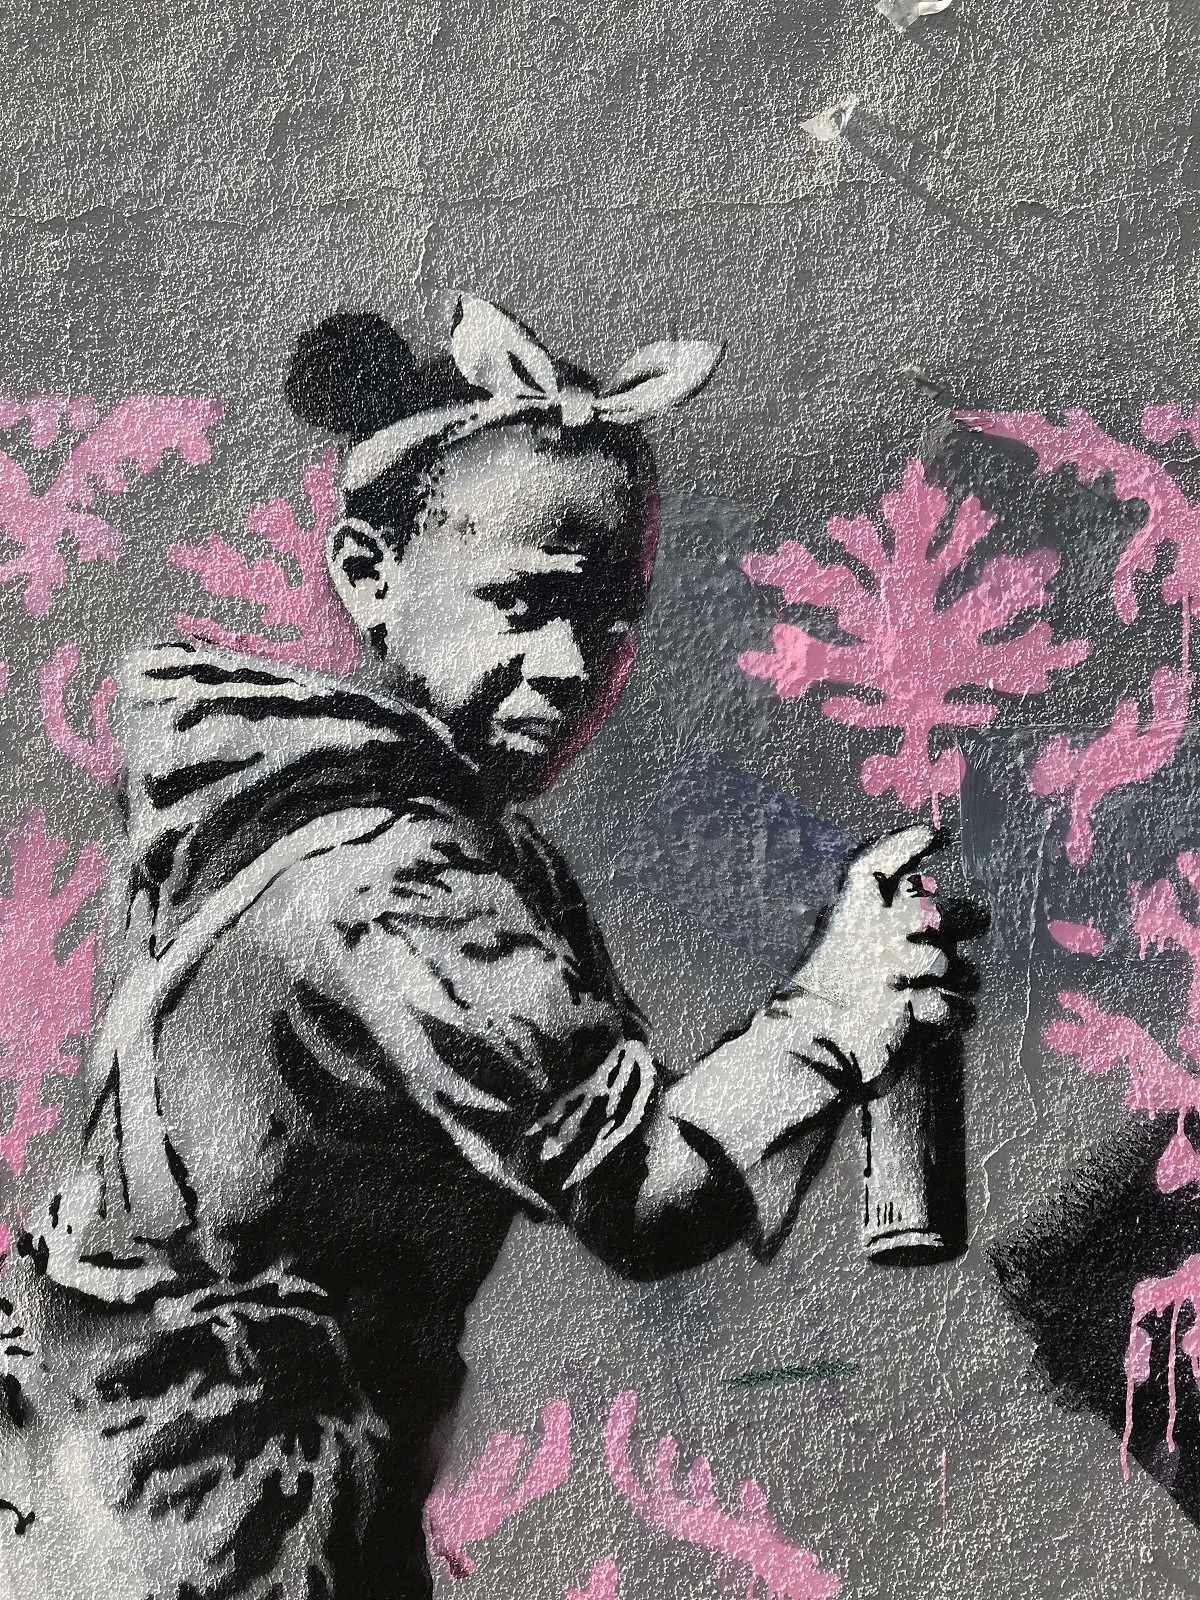 3d Street Art Wallpaper Banksy Hits Paris With Sharp Political Criticism And